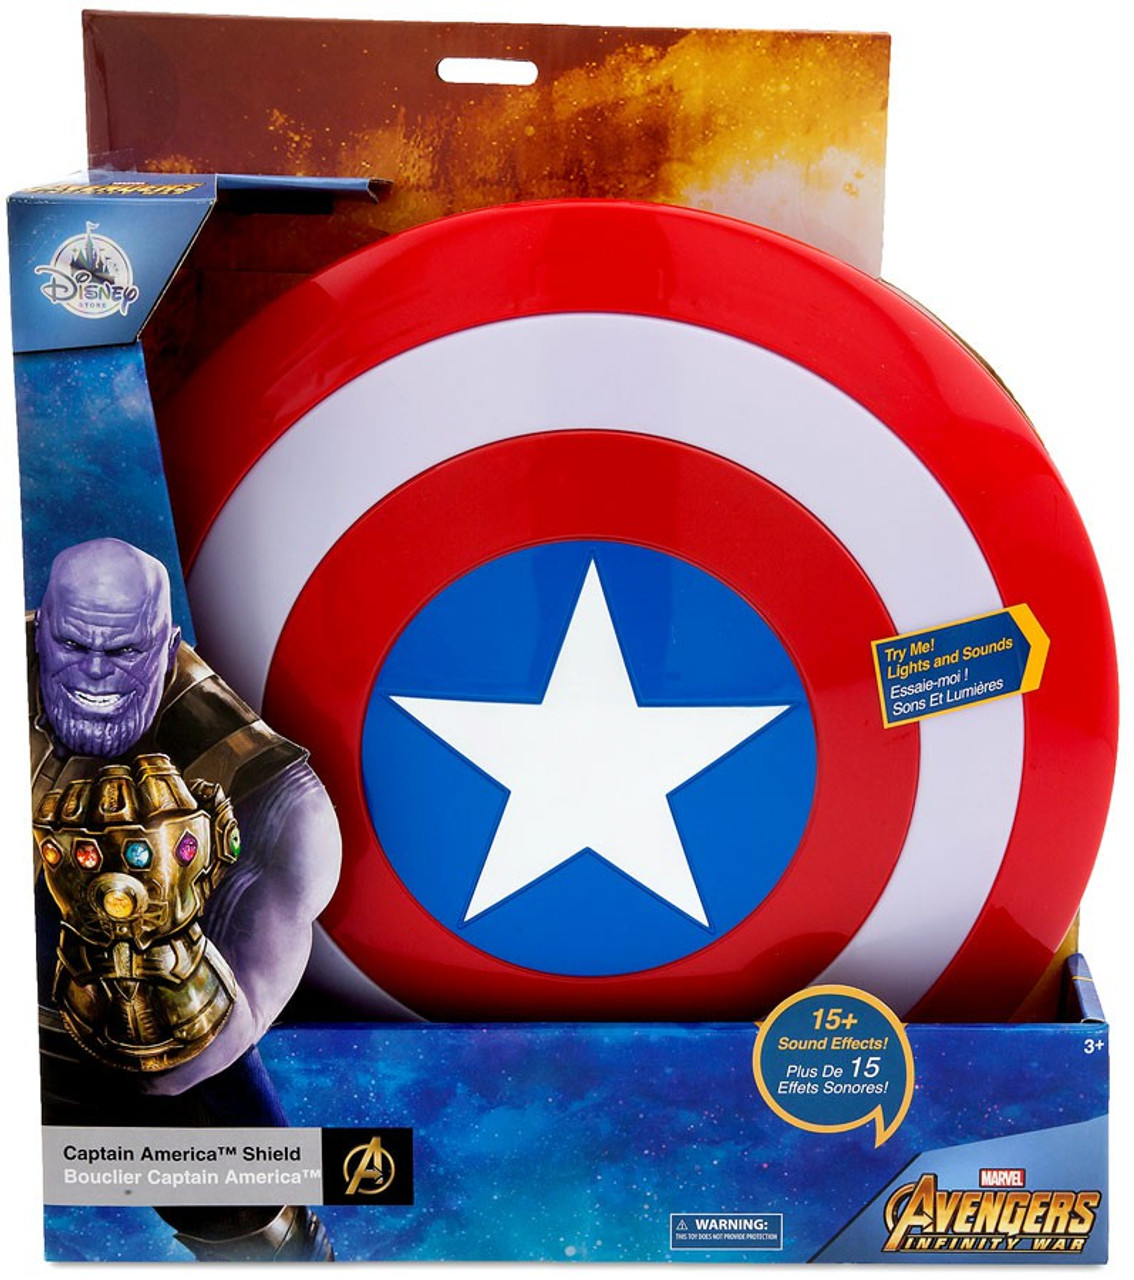 Disney Marvel Avengers Infinity War Captain America Shield Exclusive Roleplay Toy - ToyWiz